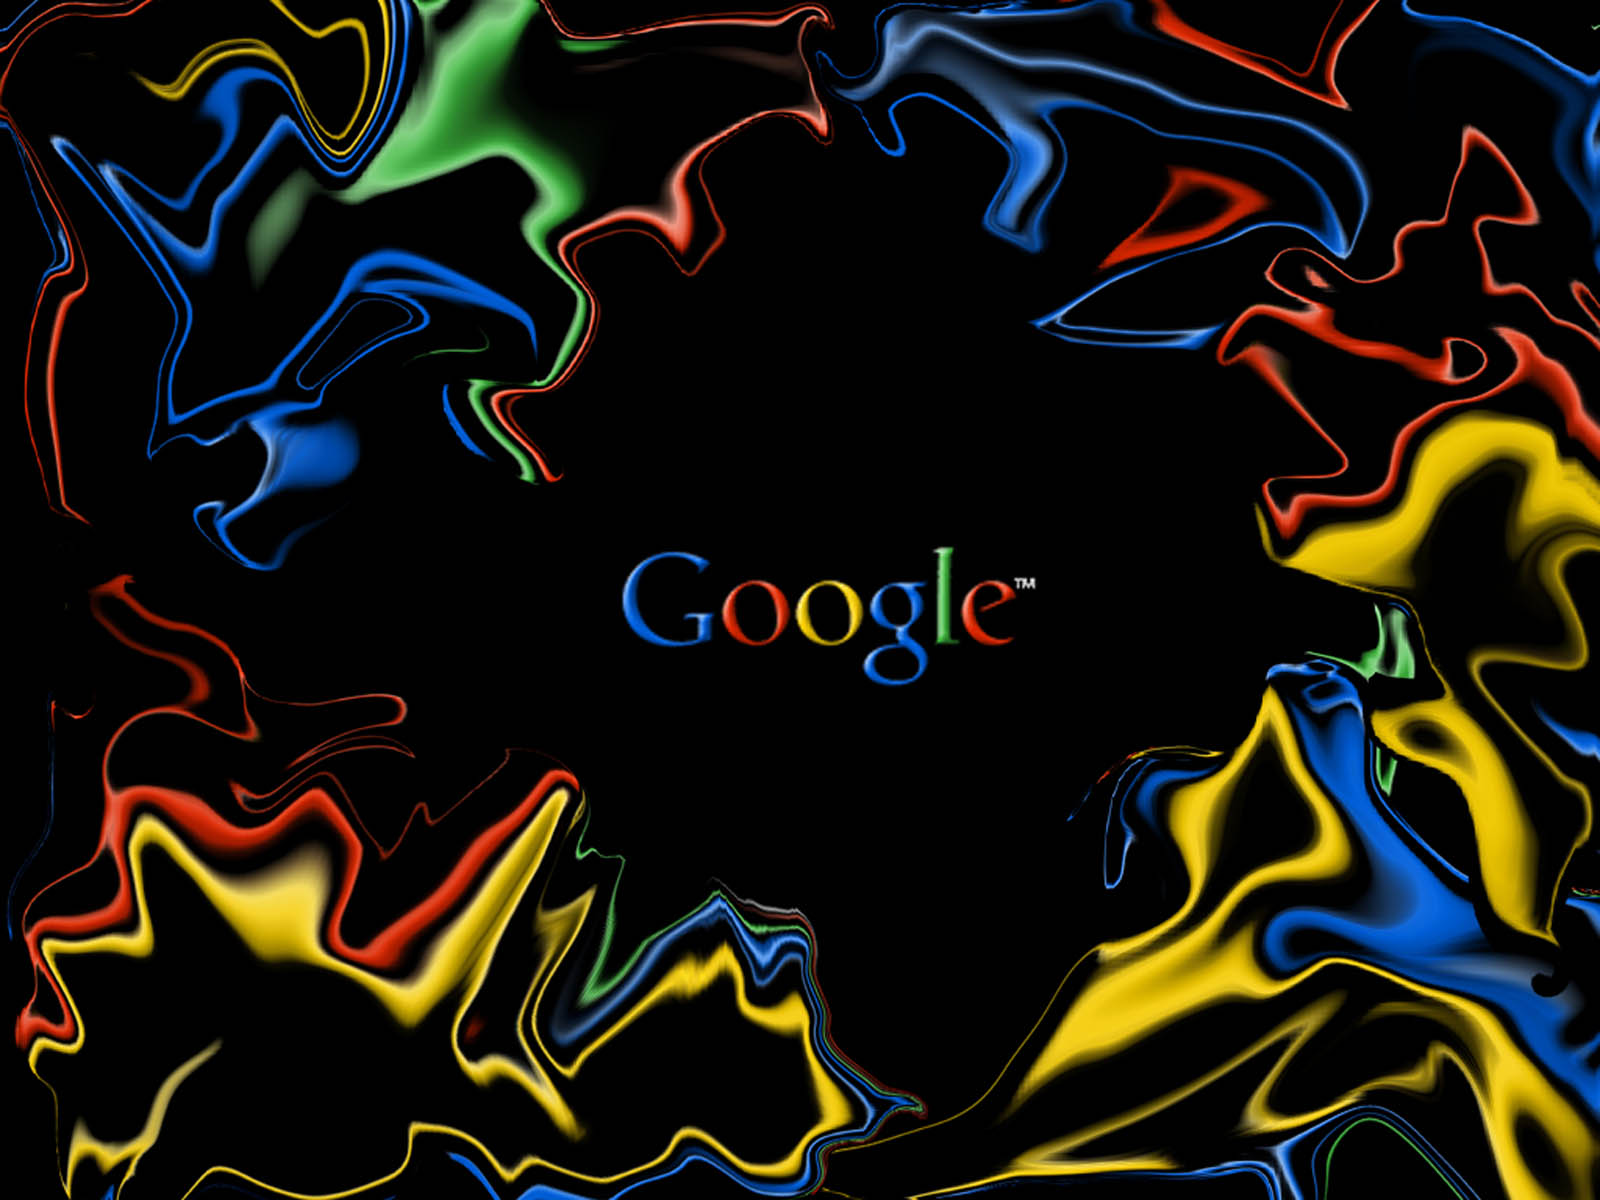 Google Backgrounds Desktop Backgrounds 1600x1200